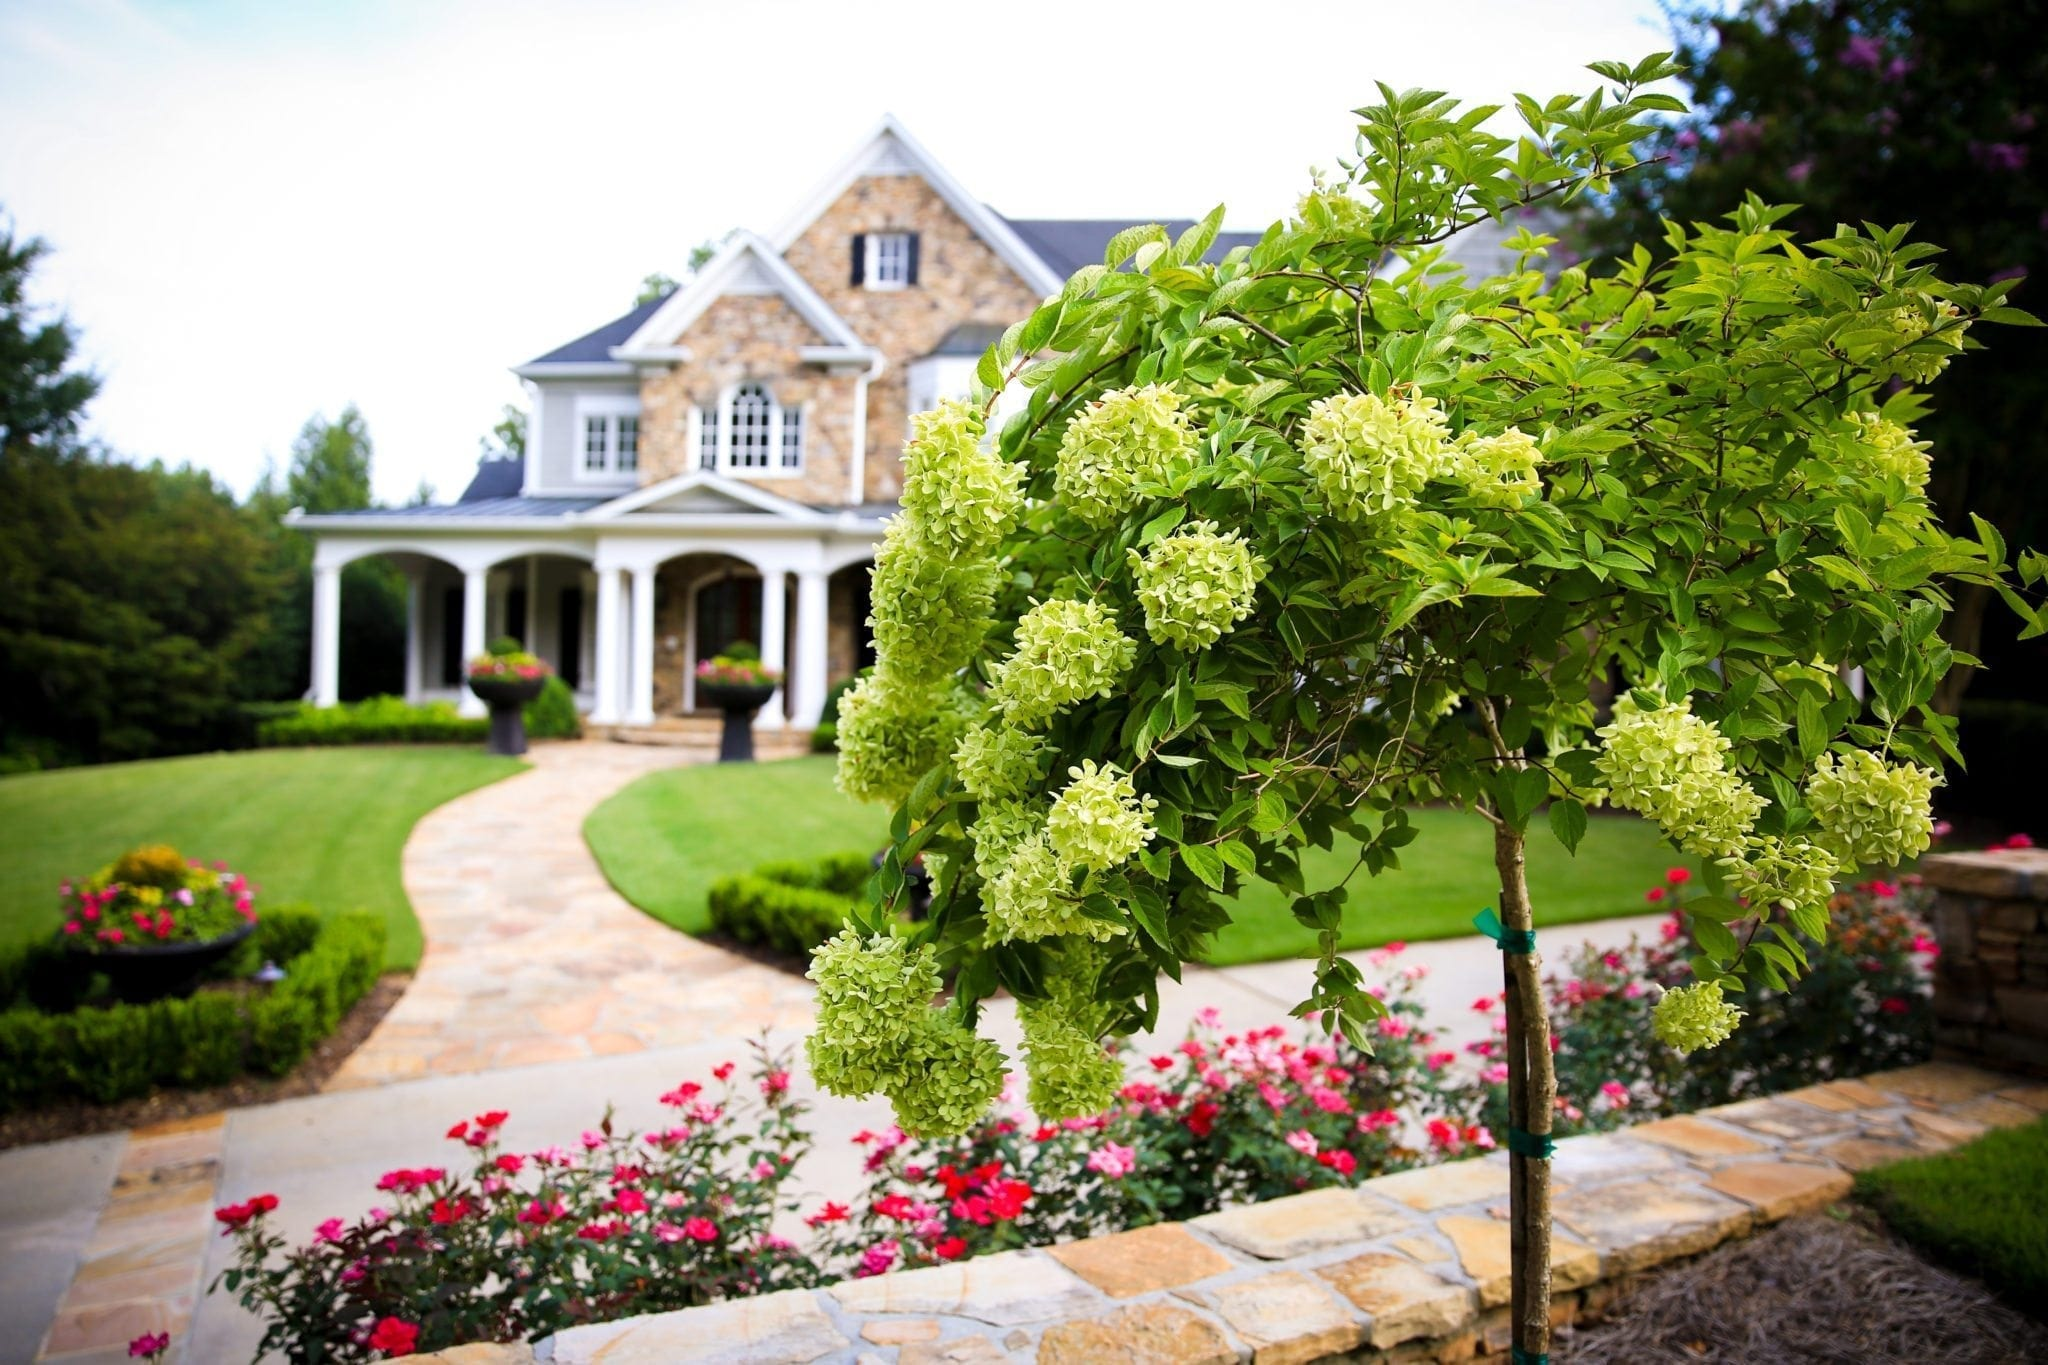 Tree form limelight hydrangea by traditional brick cape cod style home.